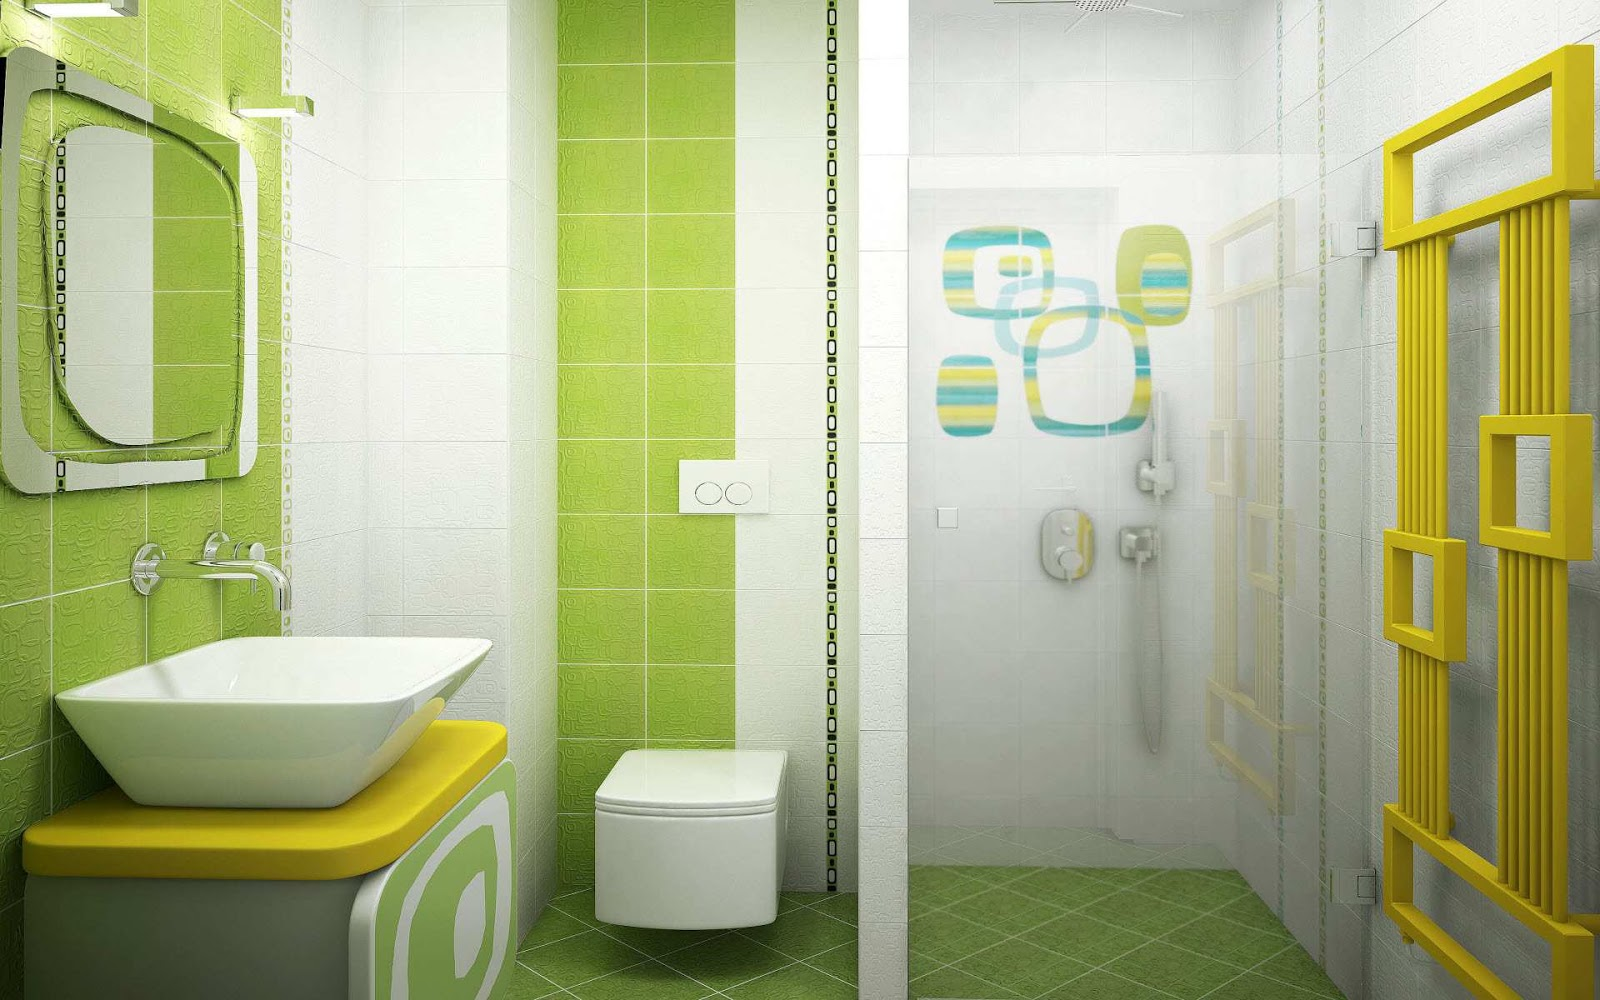 Modern Homes Interiors Wash Rooms Tiles Designs Setting Ideas.